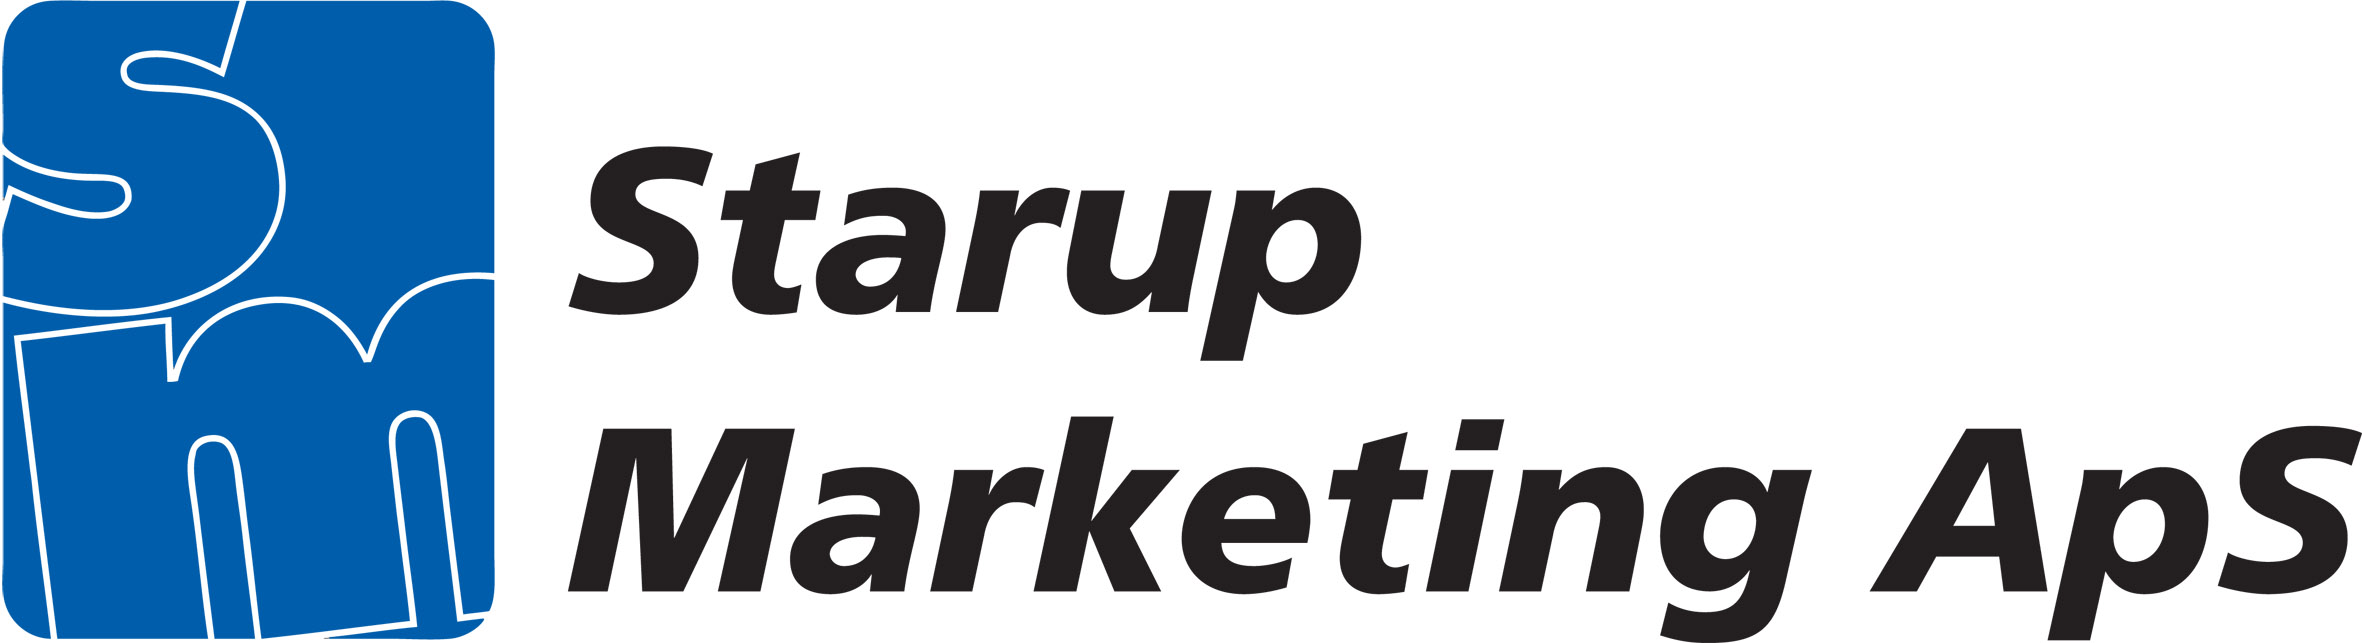 Starup Marketing